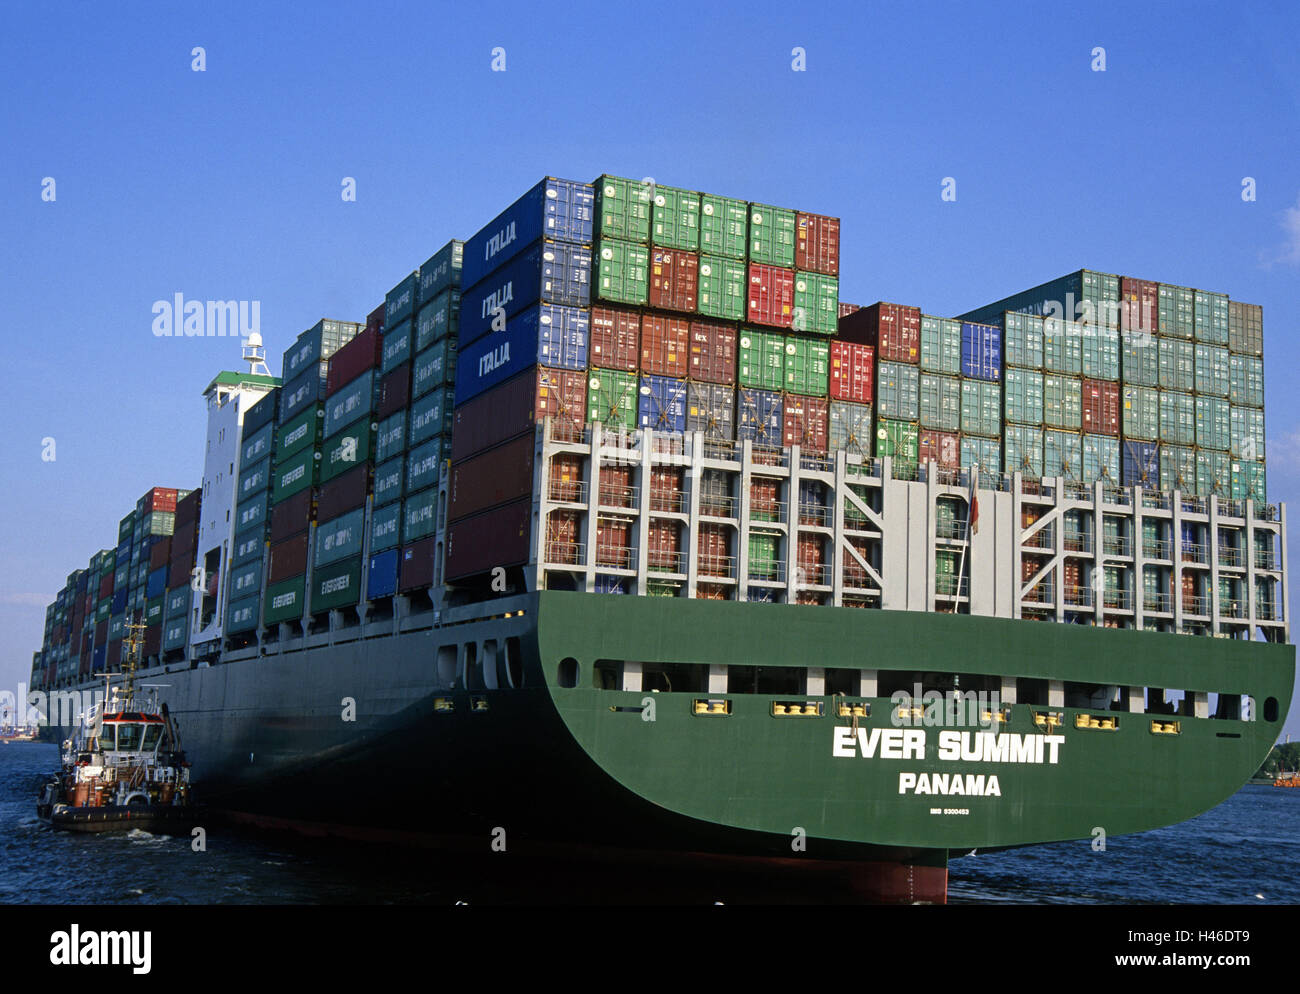 Germany, Hamburg, harbour, container ship, general cargo, tractor, the Elbe, shipload, transport, loading, river, - Stock Image